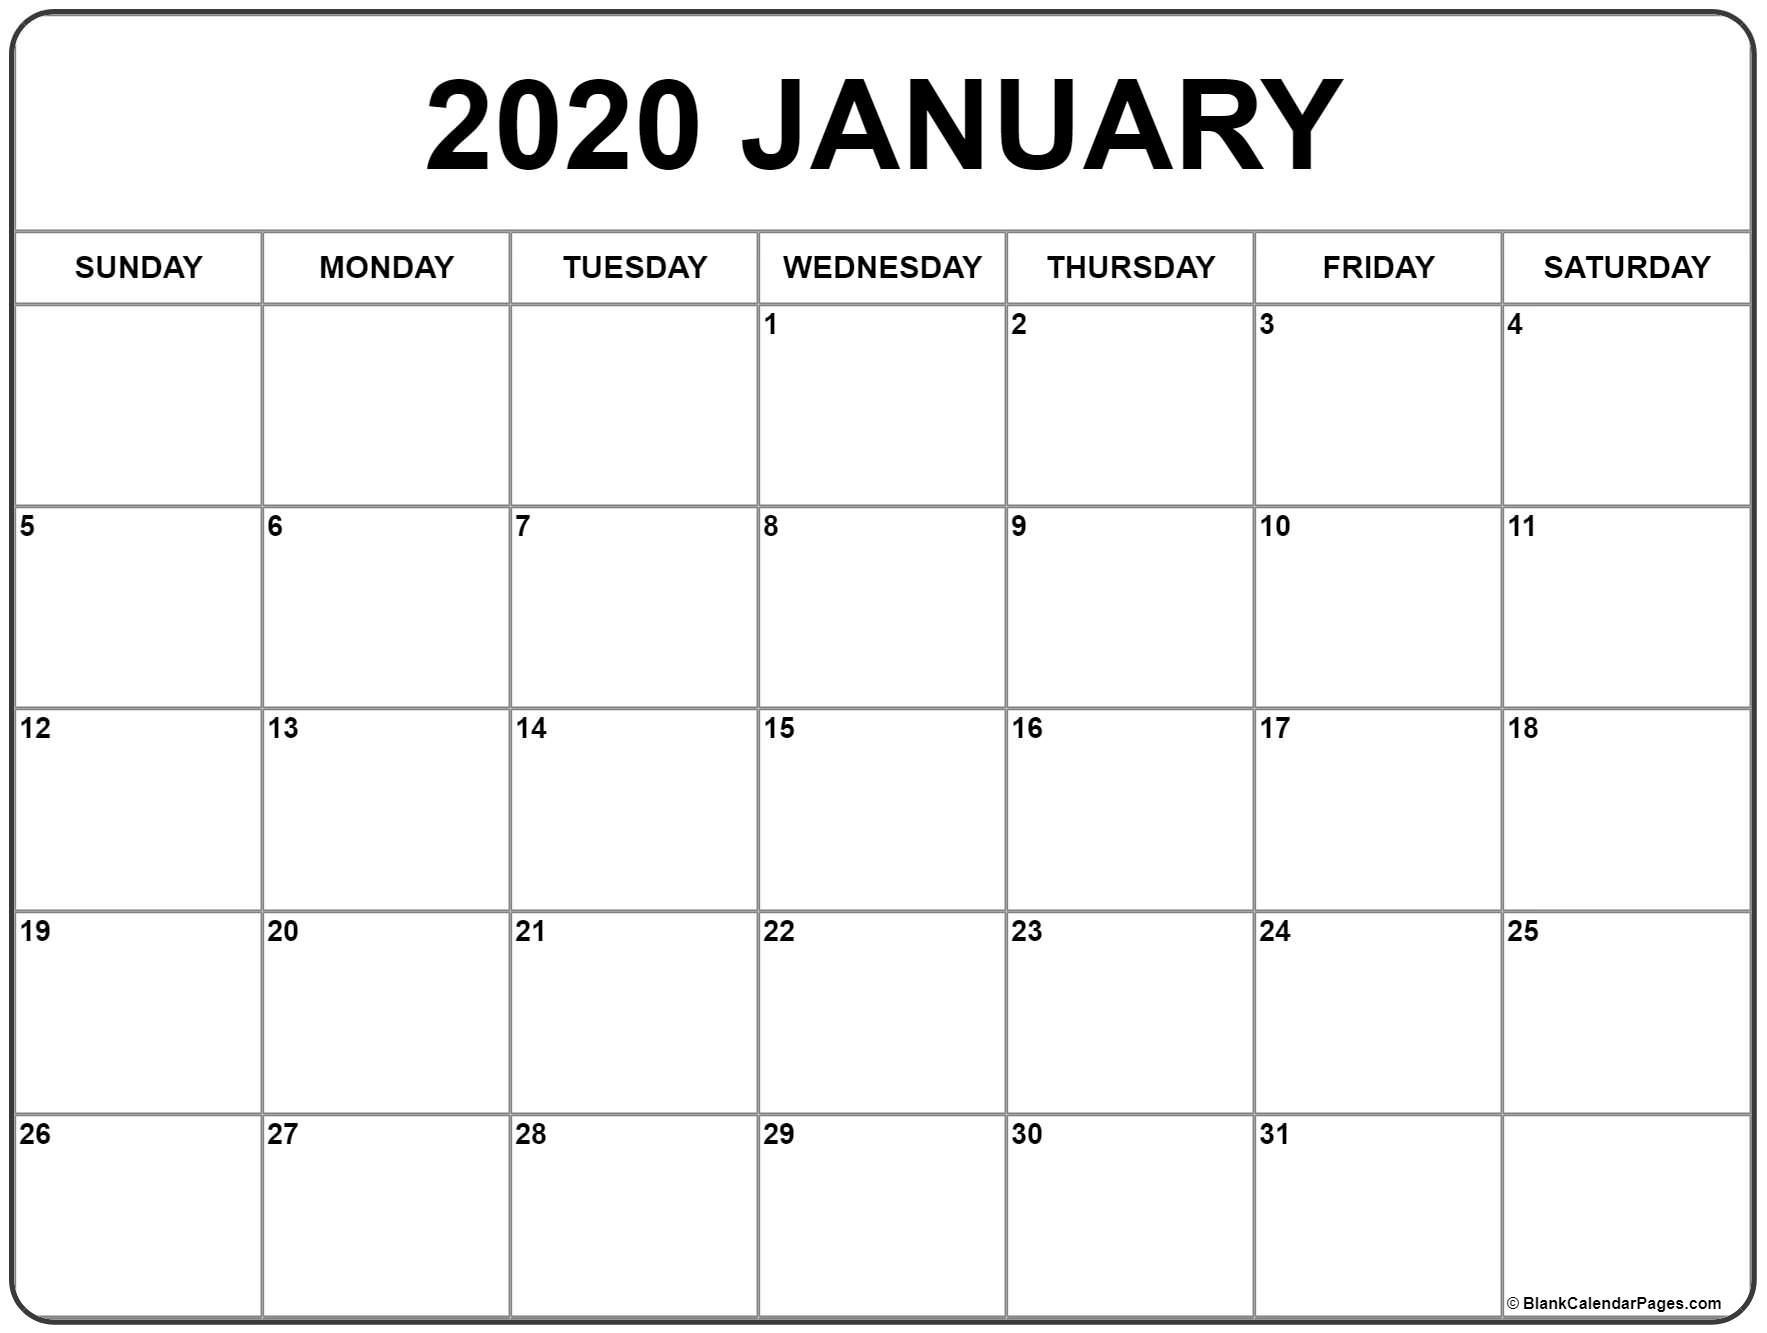 January 2020 Calendar | Free Printable Monthly Calendars-January 2020 Calendar With Notes